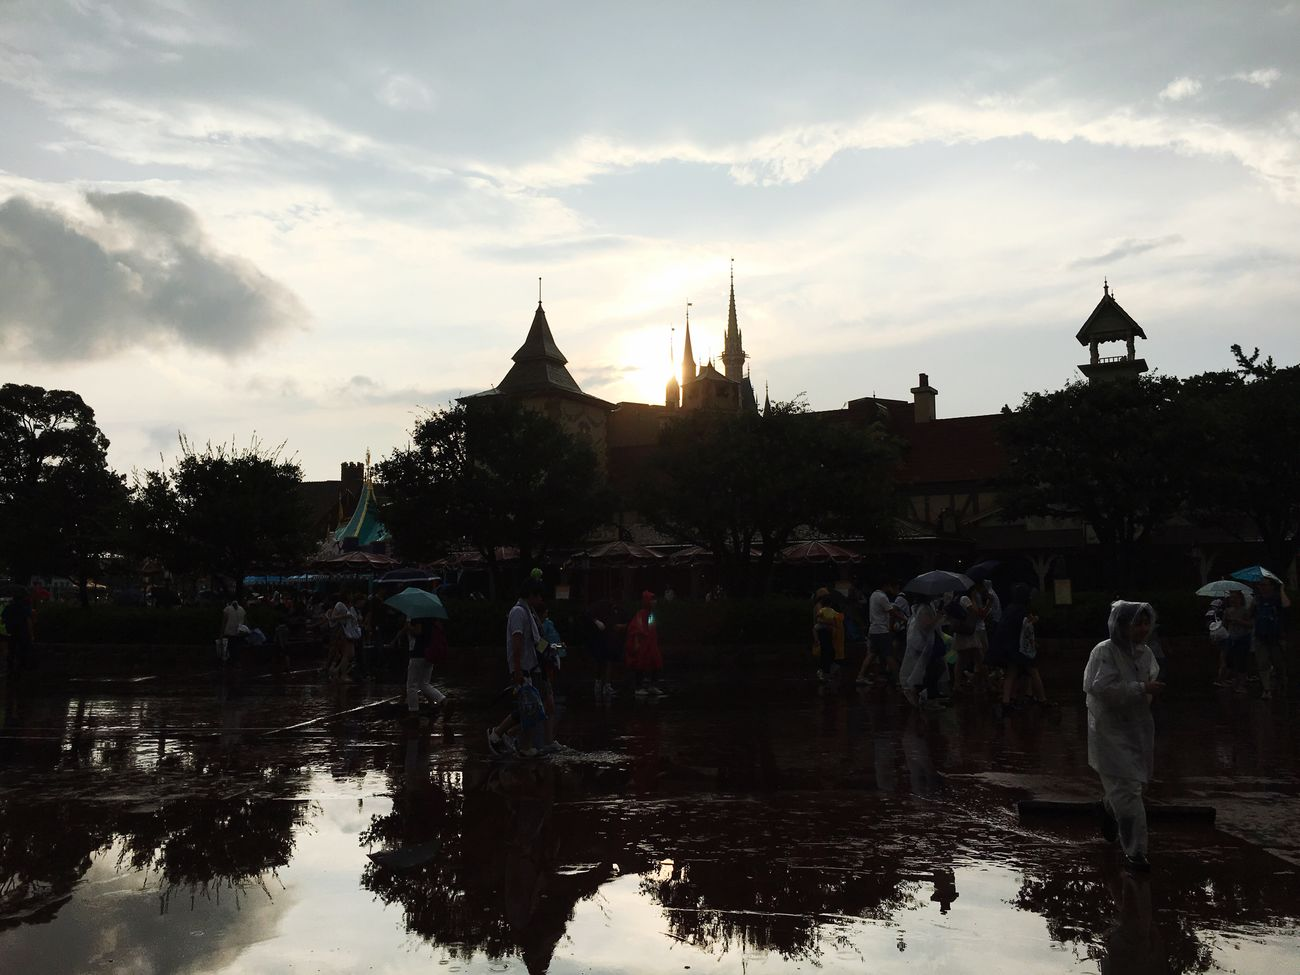 Tokyo Disney land.雨上がりの素敵なディズニーランド❤️ Sunshine Nature EyeEm Life Is Beautiful Sky And Clouds Art Tokyo,Japan Tokyo Disney Land After The Rain Light 希望 反射 鏡 Mirror Thanksgiving One Day